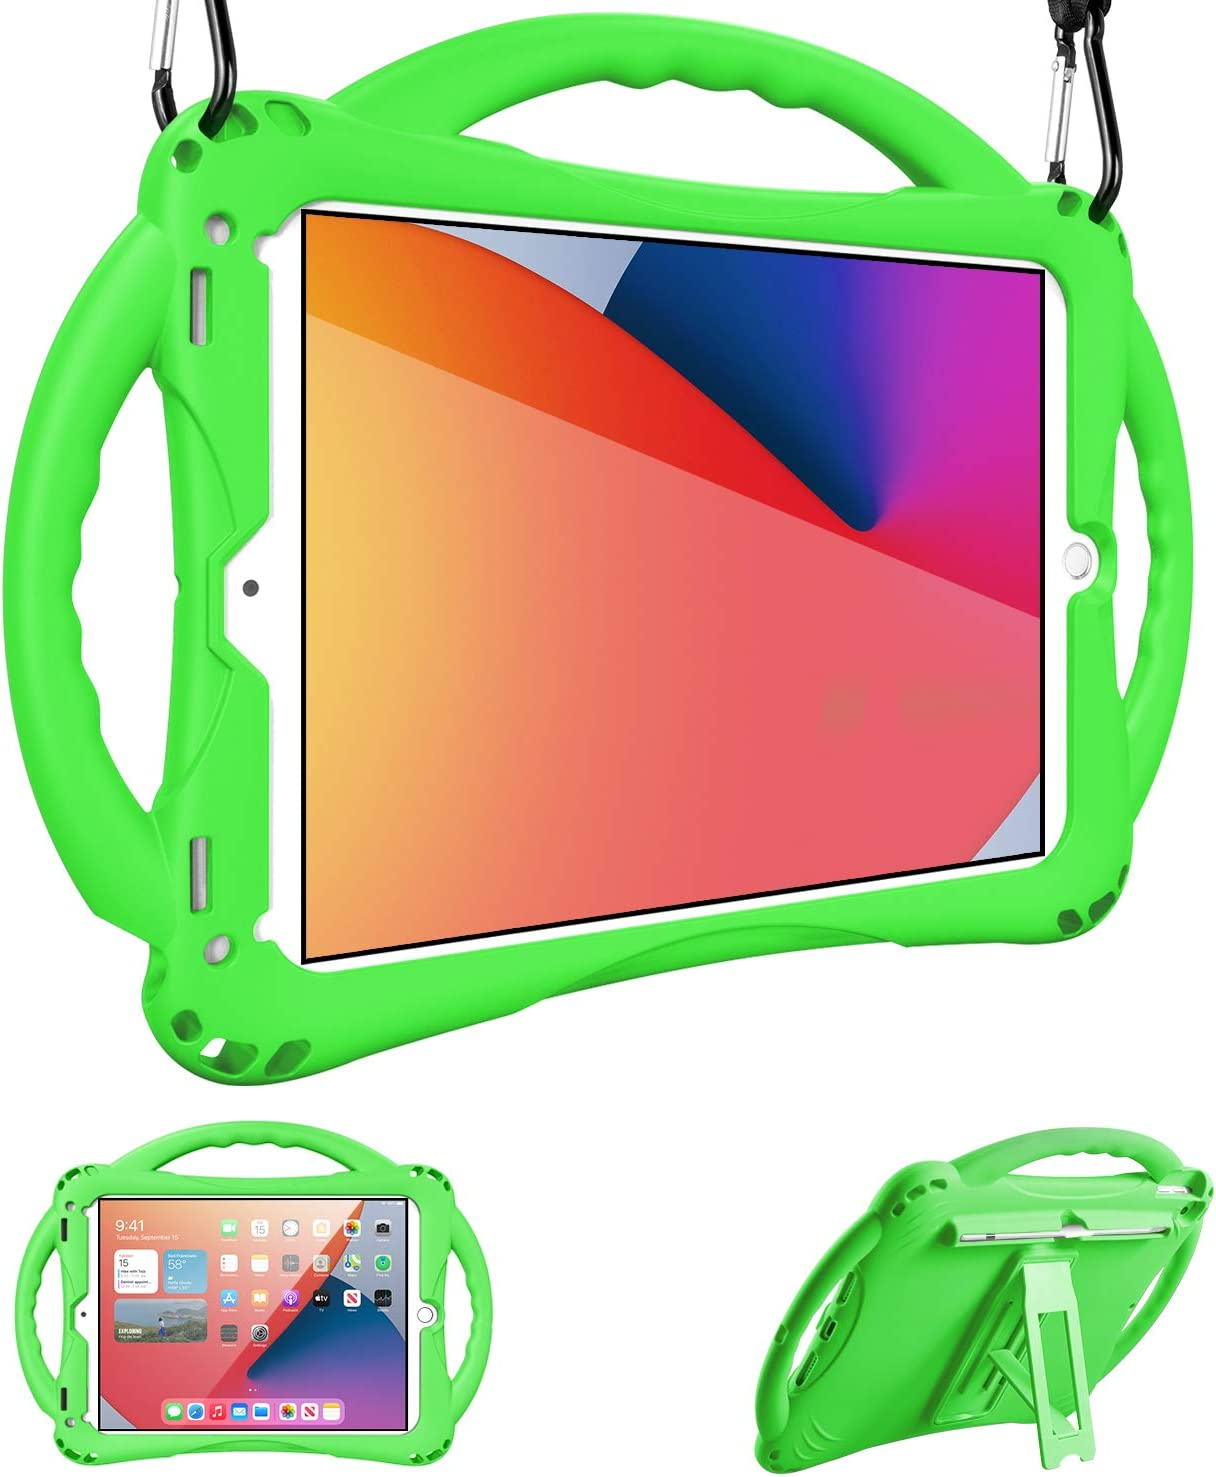 Adocham Kids case for iPad 8th & 7th Gen 10.2 (2020) iPad Air 3rd Gen 10.5 (2019)/ iPad Pro 10.5(2017), Premium Food-Grade Silicone Lightweight Shock Proof Handle Stand Kids Friendly Cover (Green)